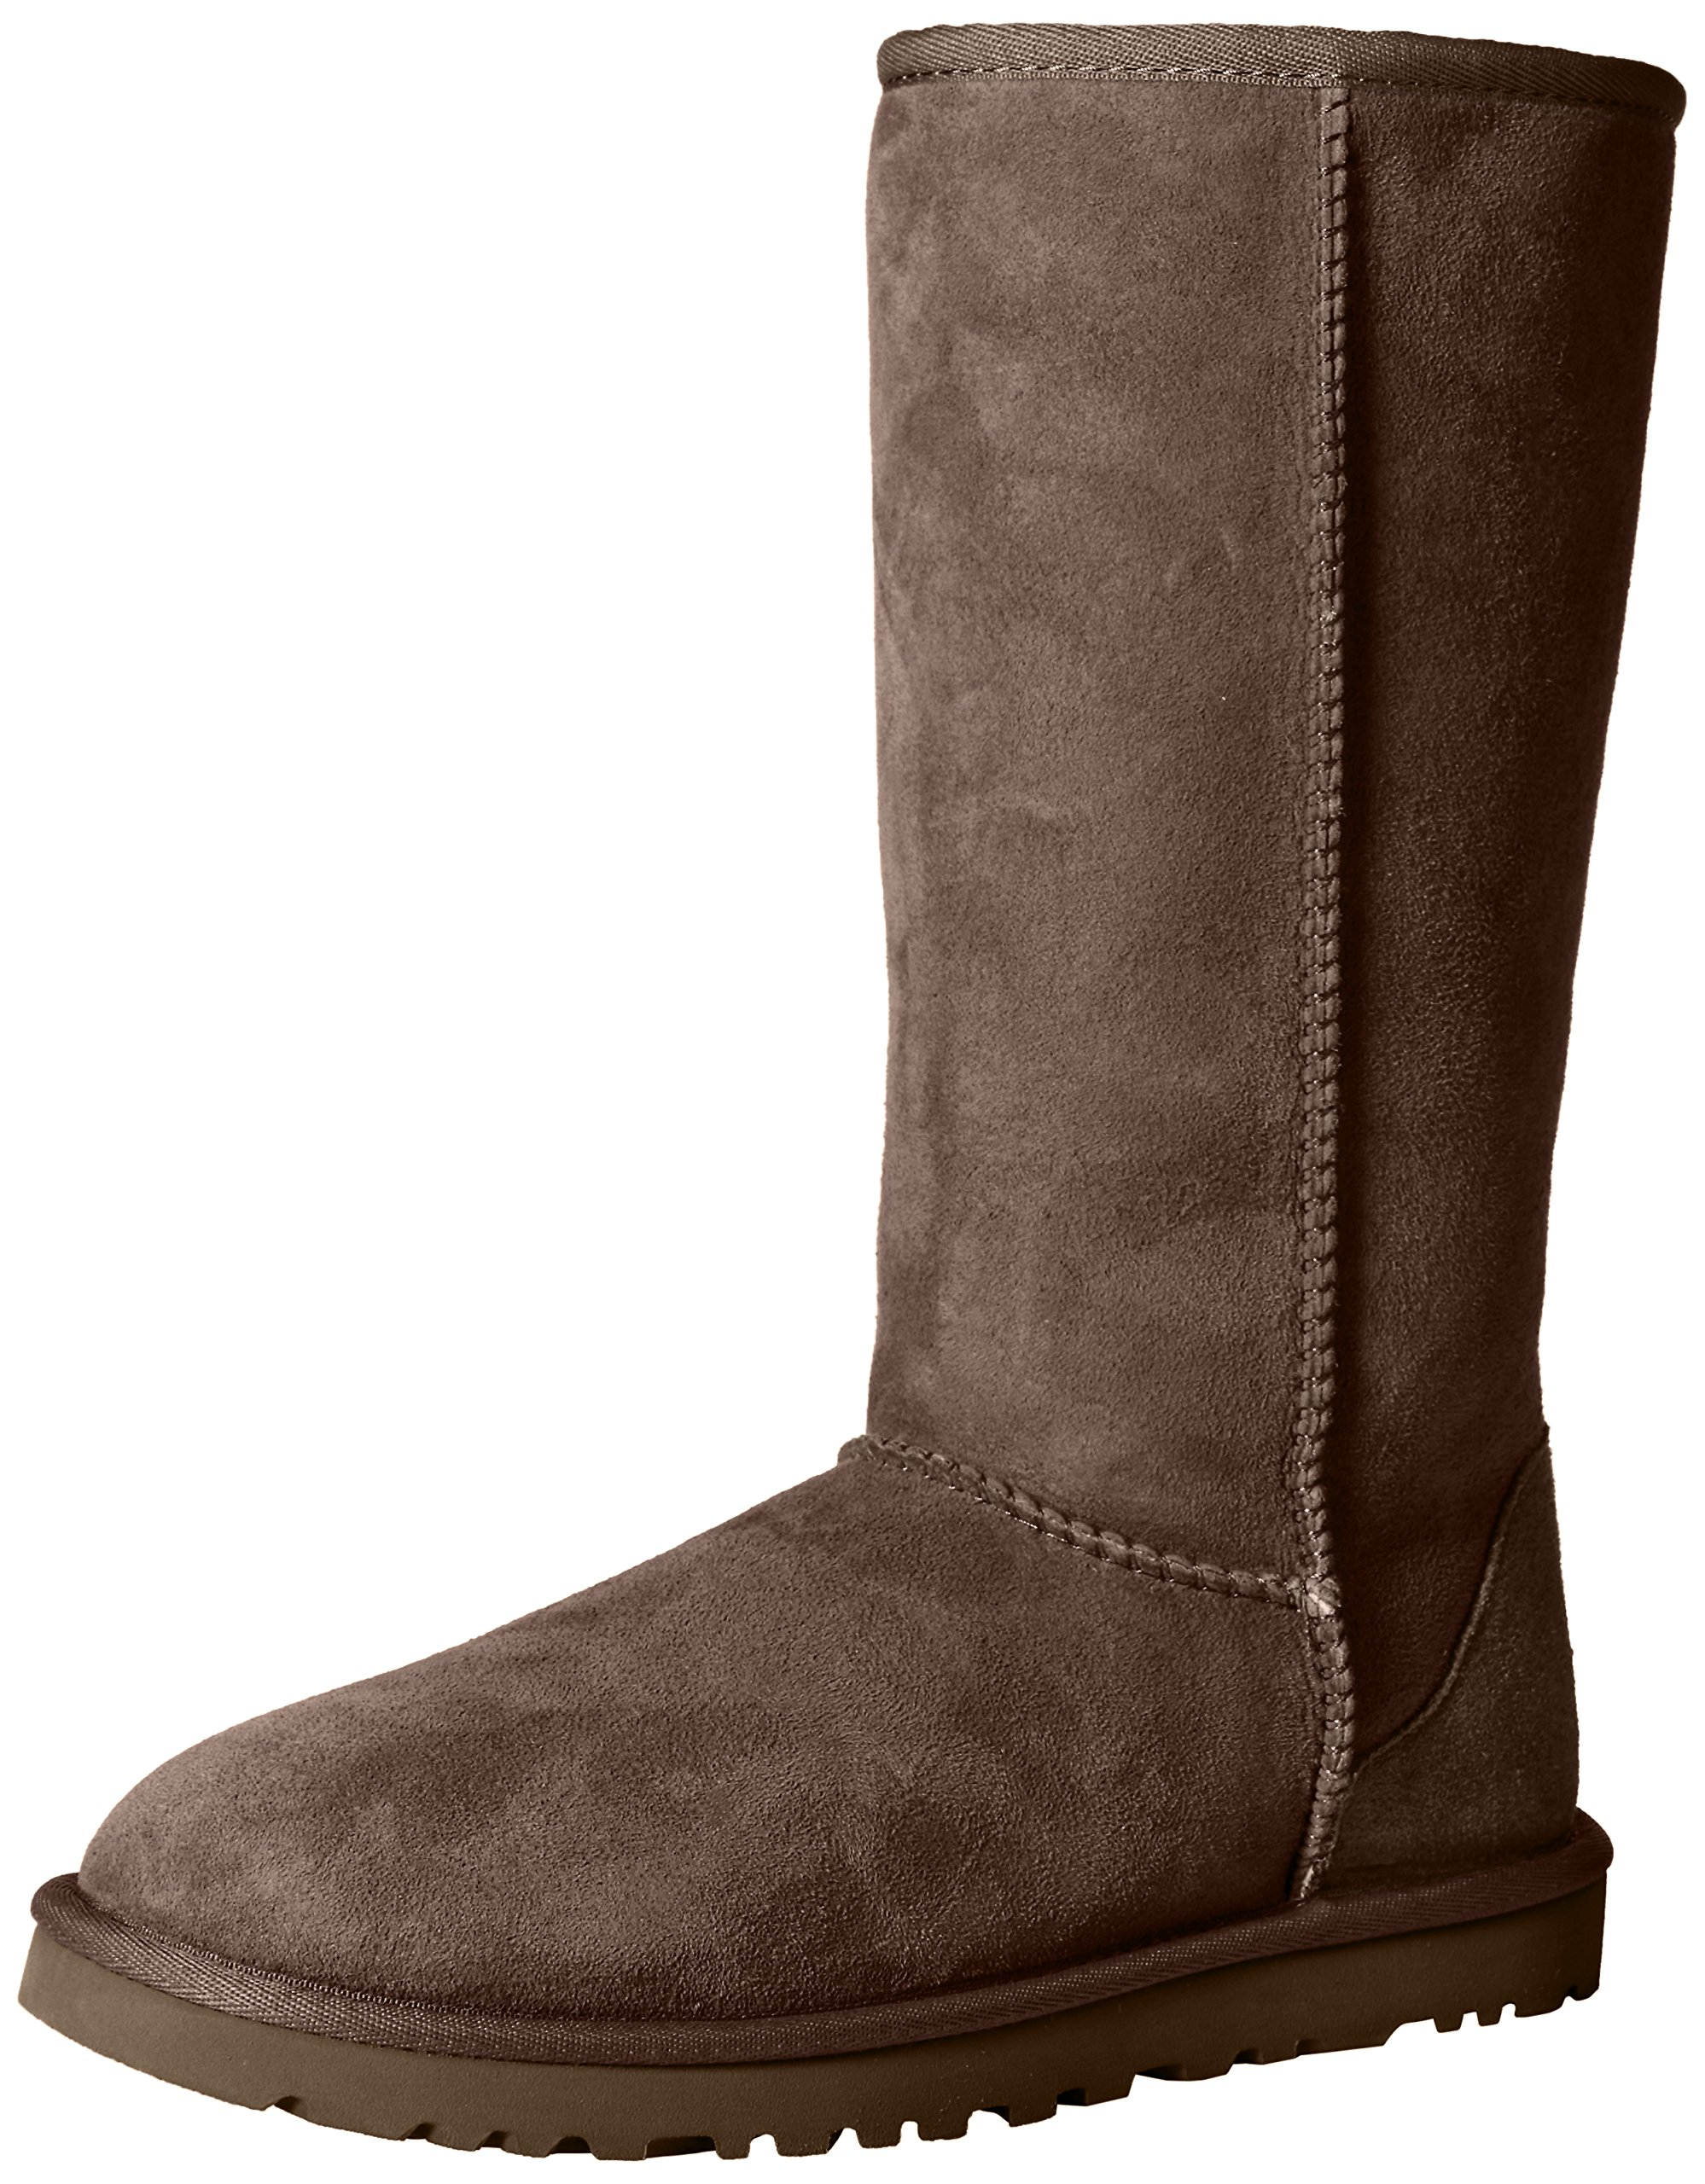 UGG Australia Women's Classic Tall Boots 10 M (US), Chocolate by UGG